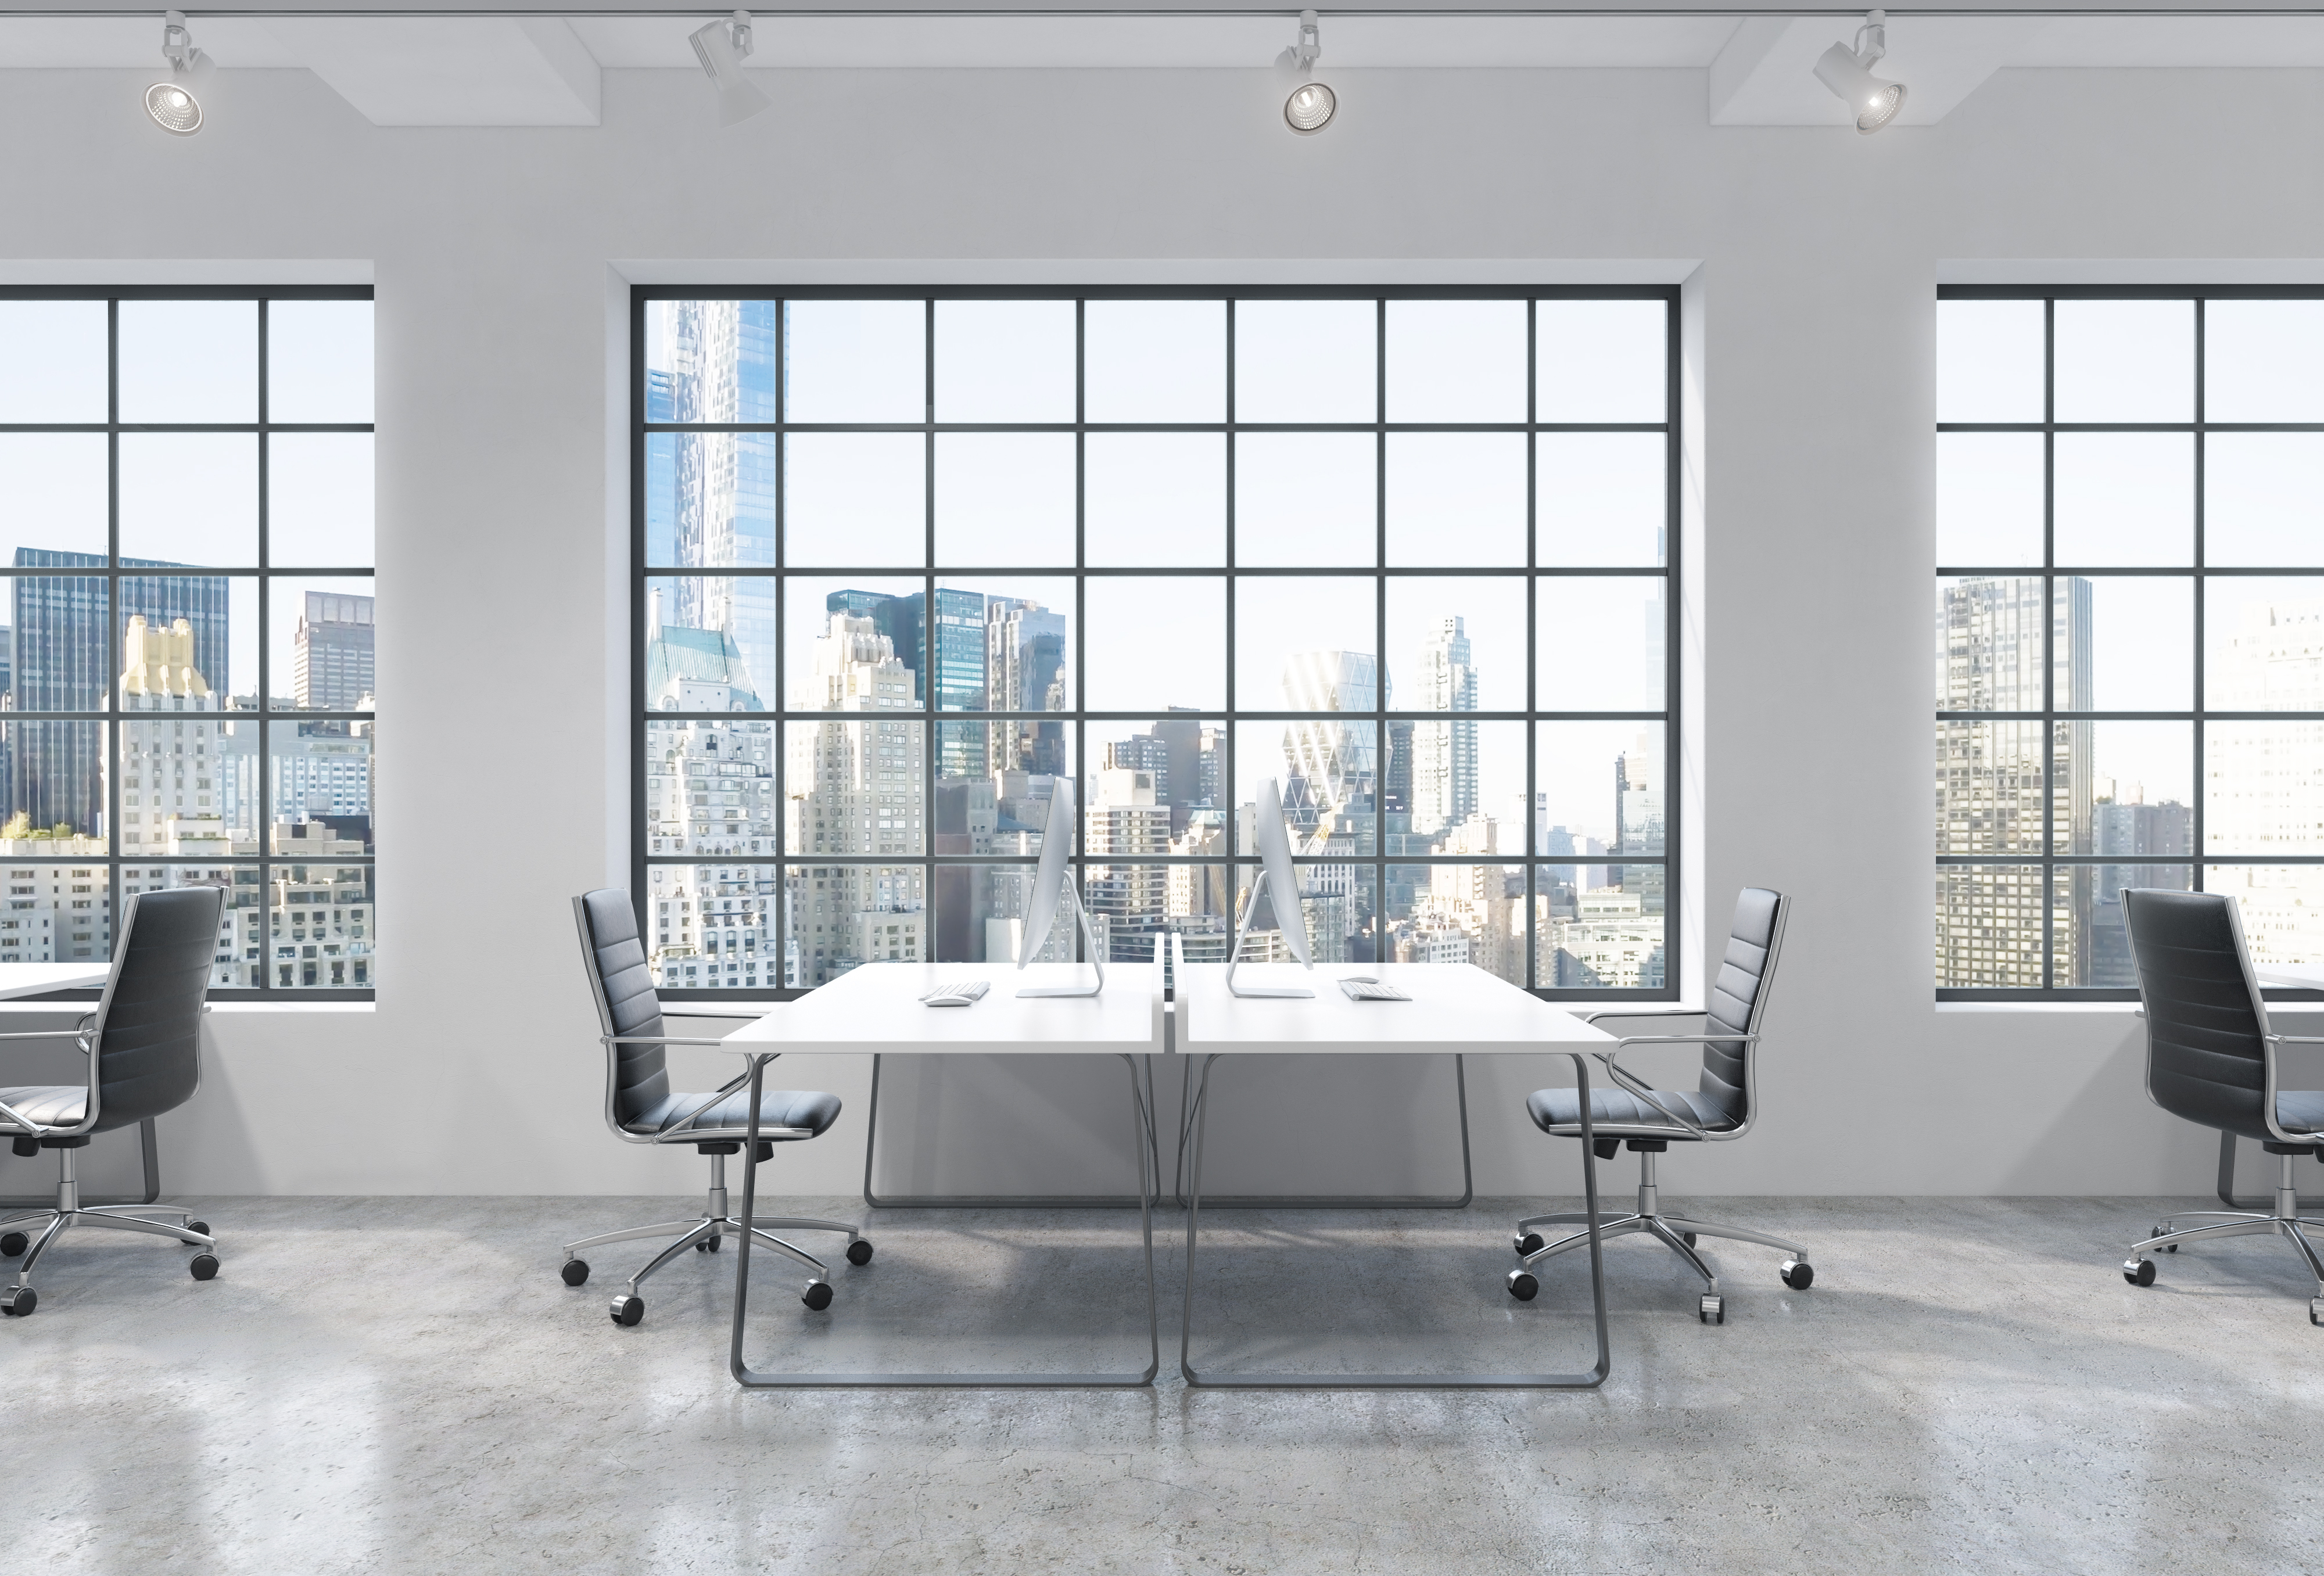 office industrial. A New Age Industrial Product Emerging To Meet Modern Needs | National Real Estate Investor Office I